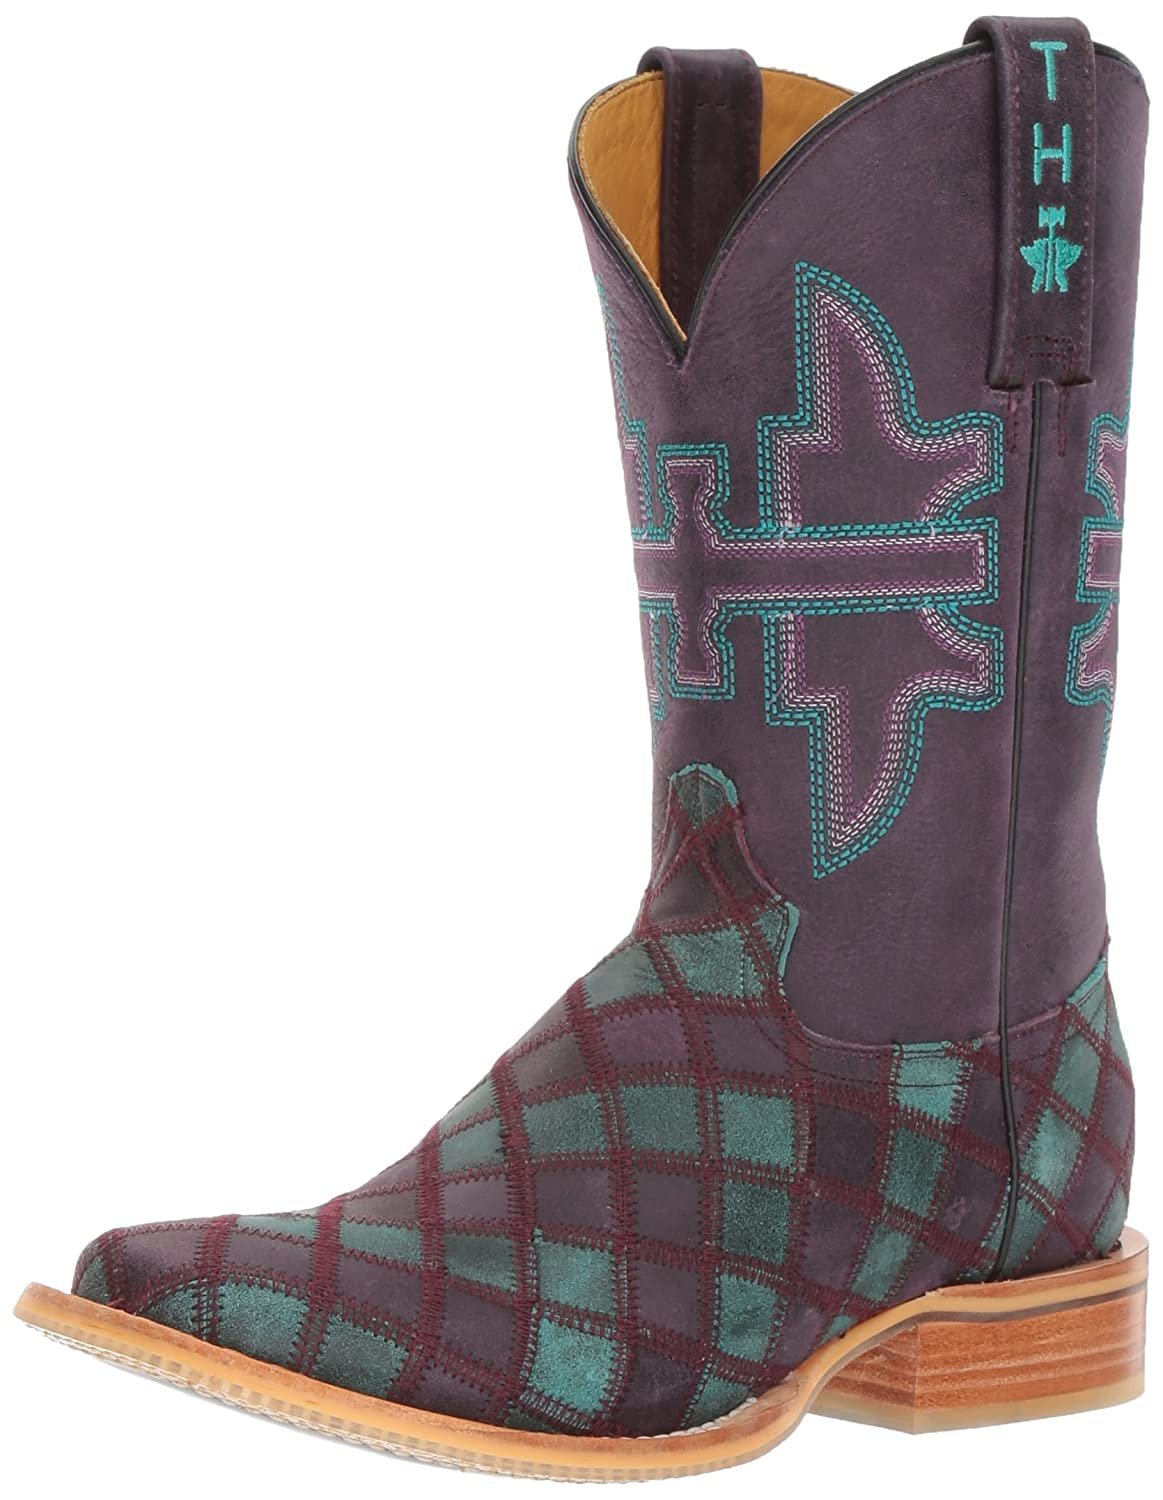 Tin Haul Shoes Women's Chevron Western Boot B01CUDCK48 7 D US|Multi